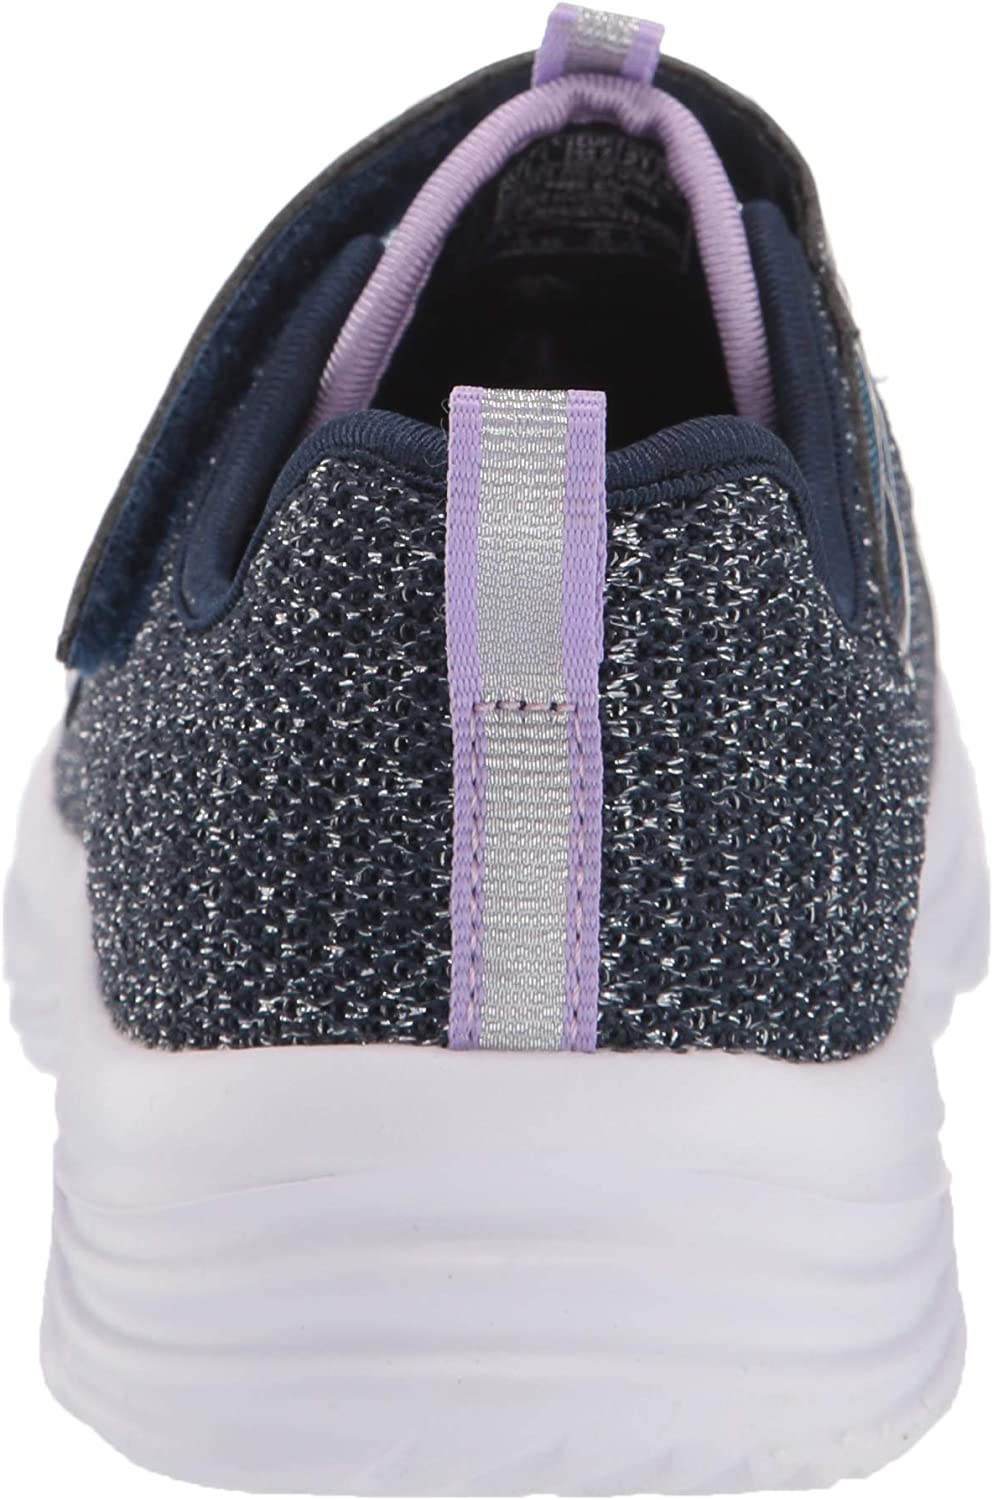 SKECHERS KIDS Dreamy Dancer 81517L Navy Lavender Girls Shoes